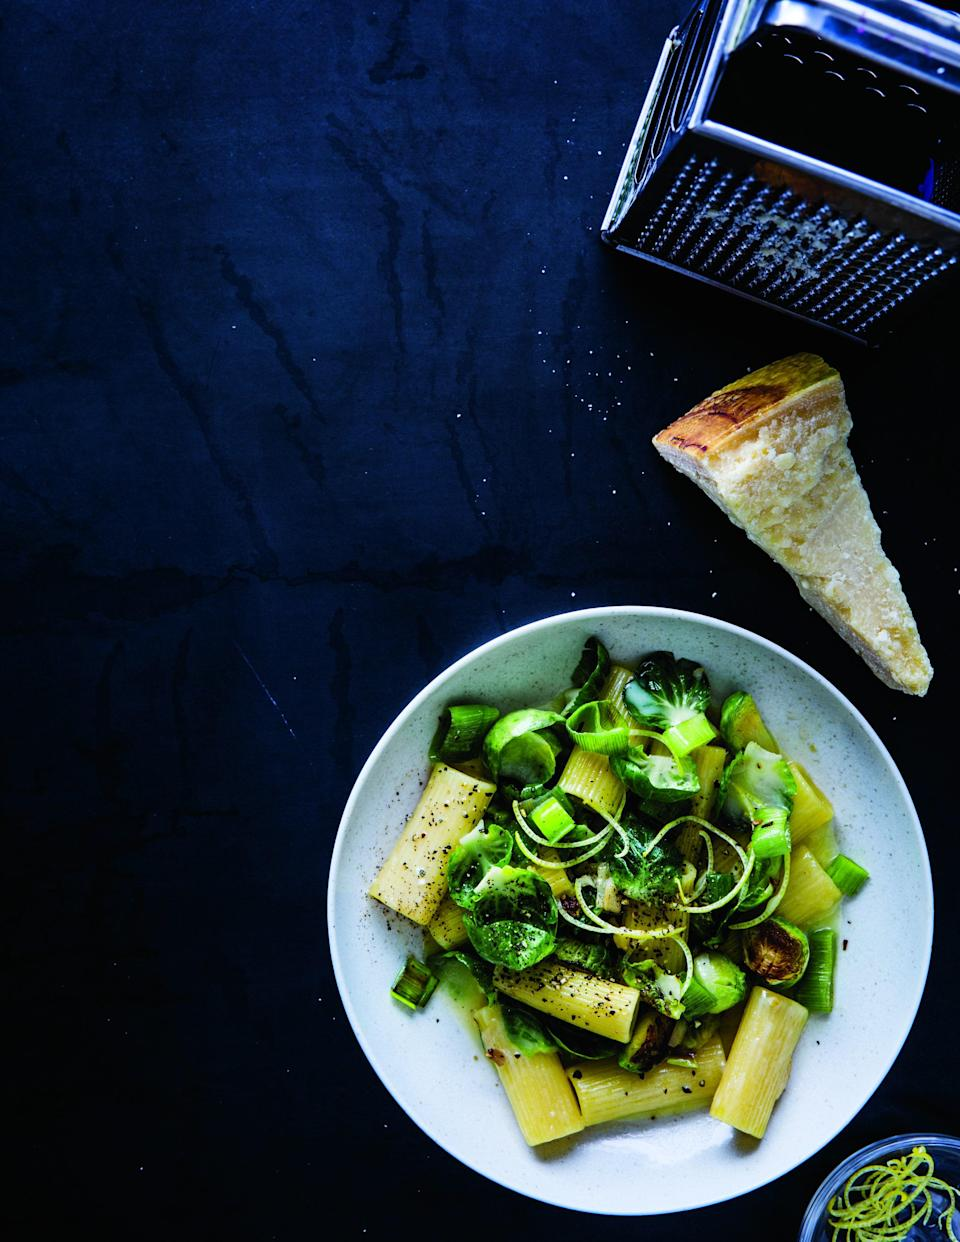 """The addition of leeks and white wine to this rigatoni makes it creamy, buttery, and bright. <a href=""""https://www.epicurious.com/recipes/food/views/rigatoni-with-brussels-sprouts-parmesan-lemon-and-leek?mbid=synd_yahoo_rss"""" rel=""""nofollow noopener"""" target=""""_blank"""" data-ylk=""""slk:See recipe."""" class=""""link rapid-noclick-resp"""">See recipe.</a>"""